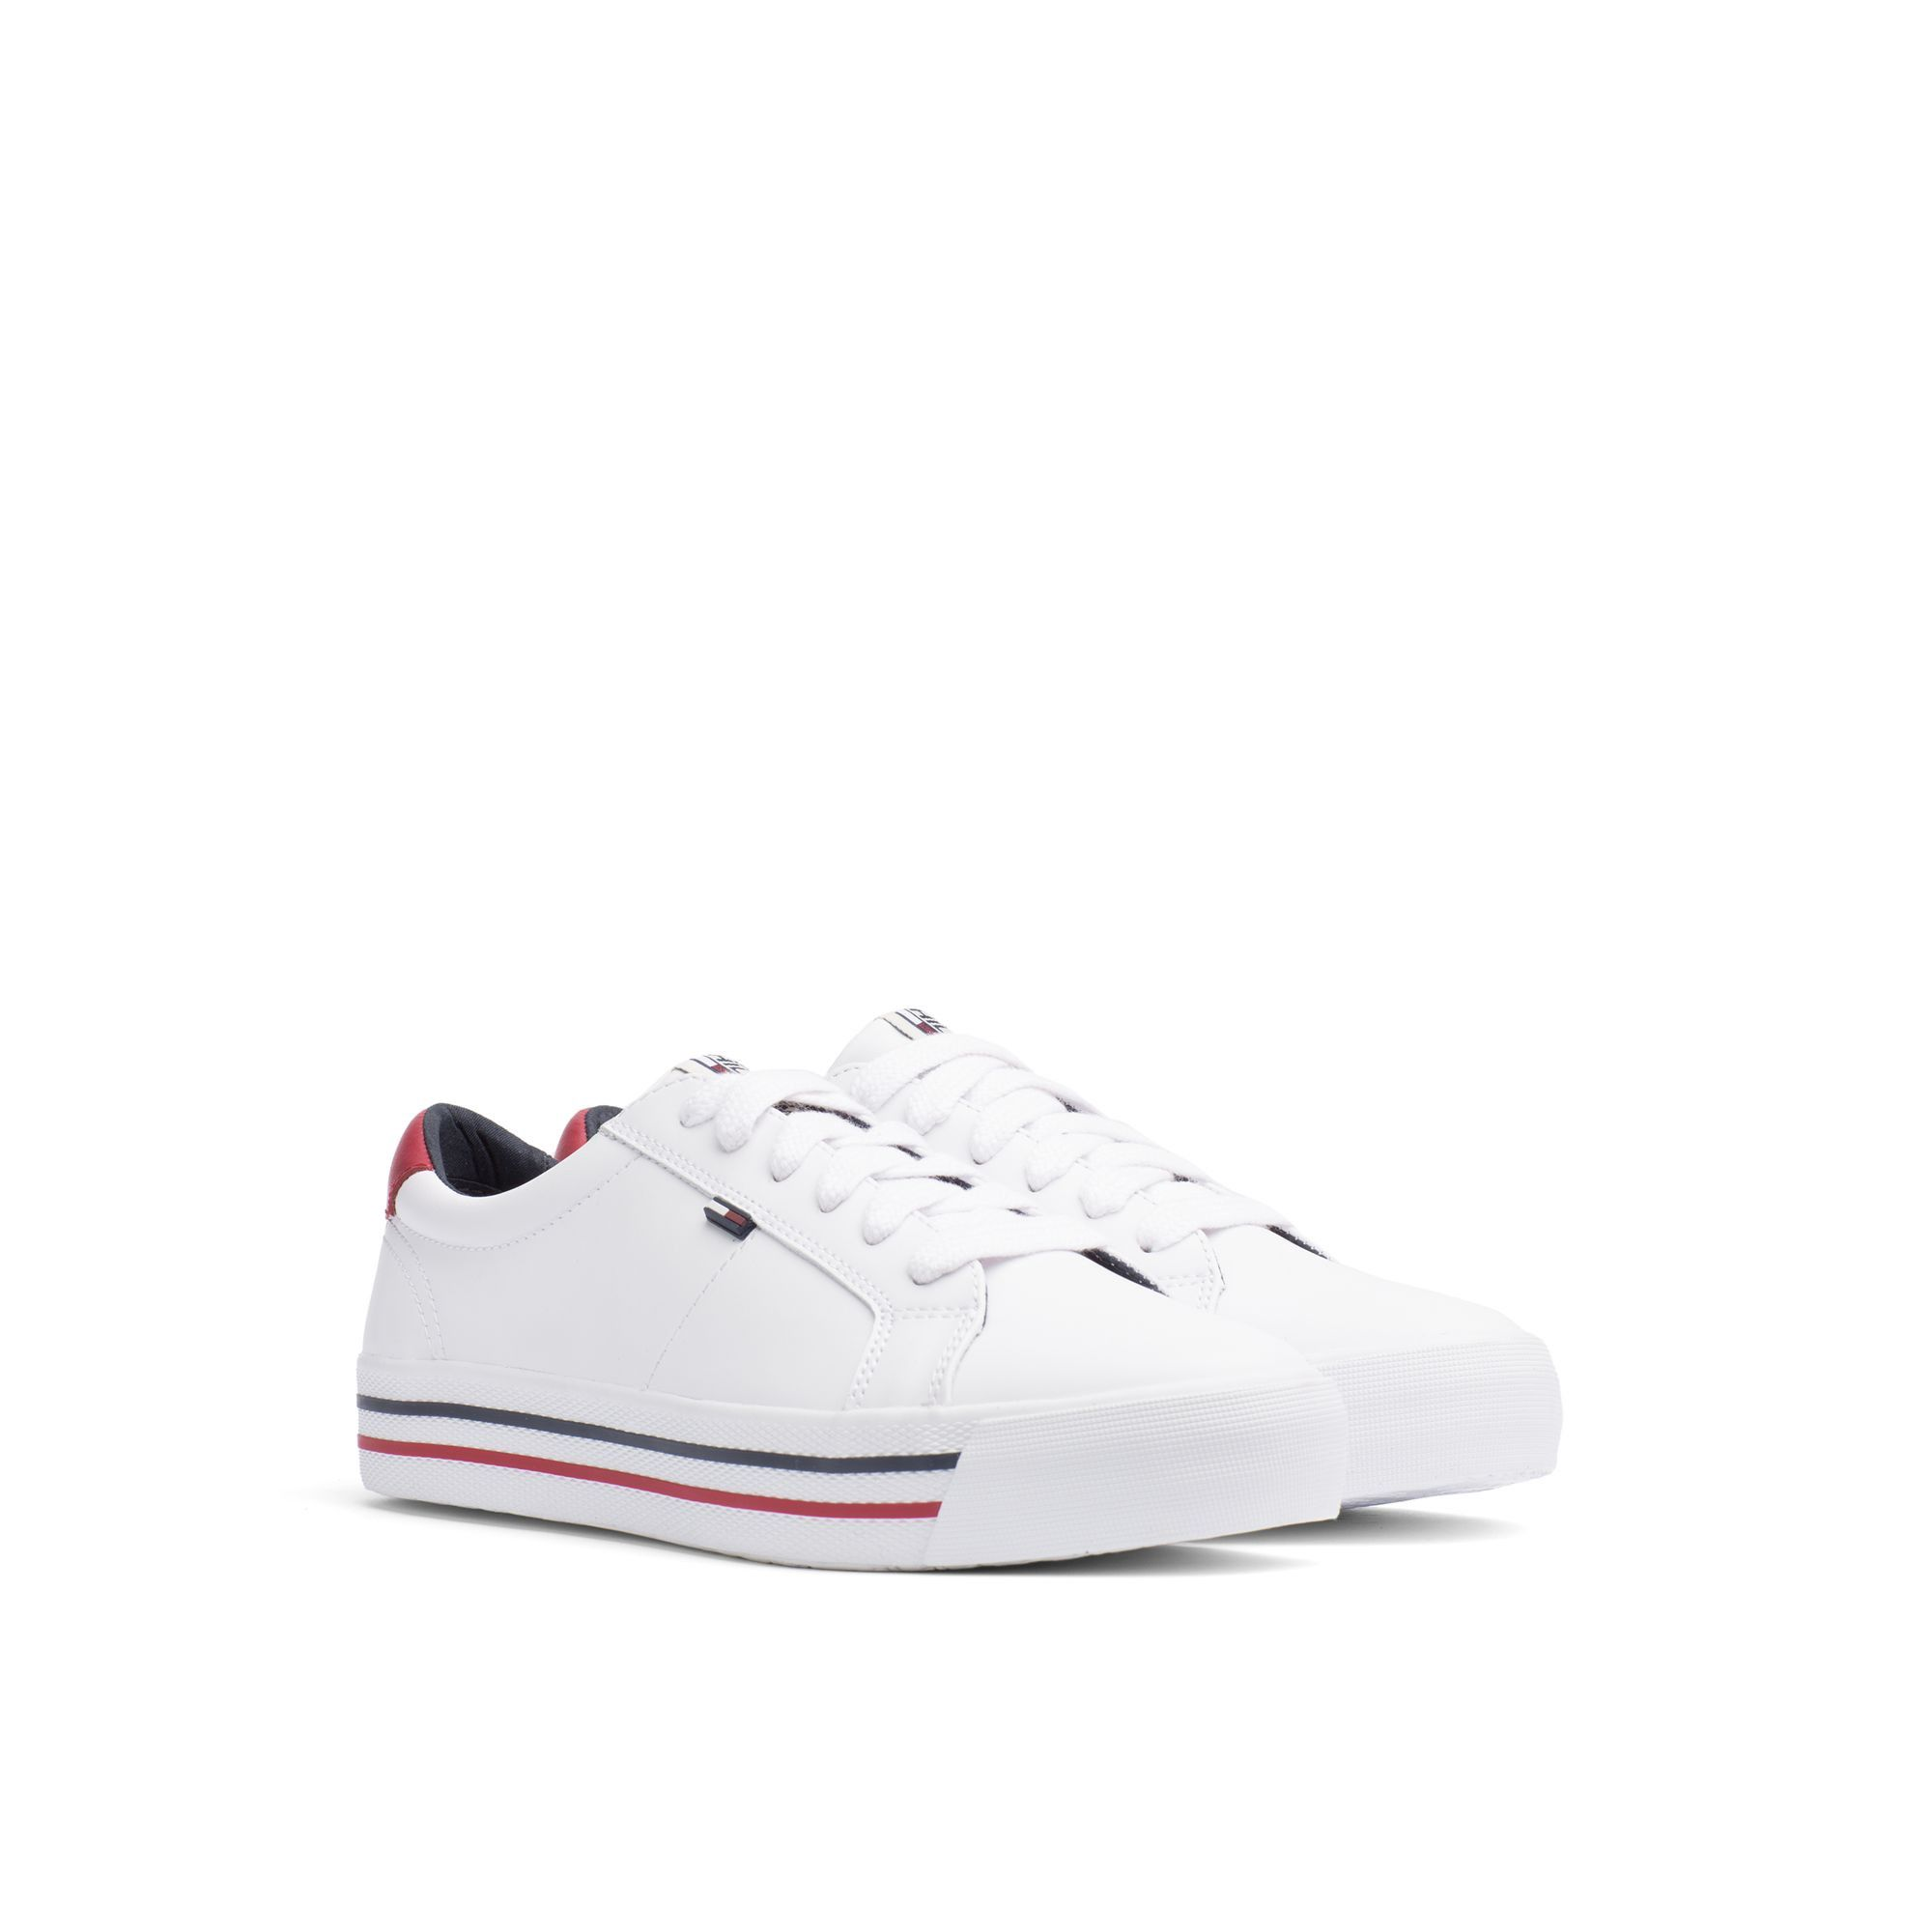 c80d2b4433f5 TOMMY HILFIGER STRIPED SOLE SNEAKER - WHITE.  tommyhilfiger  shoes ...